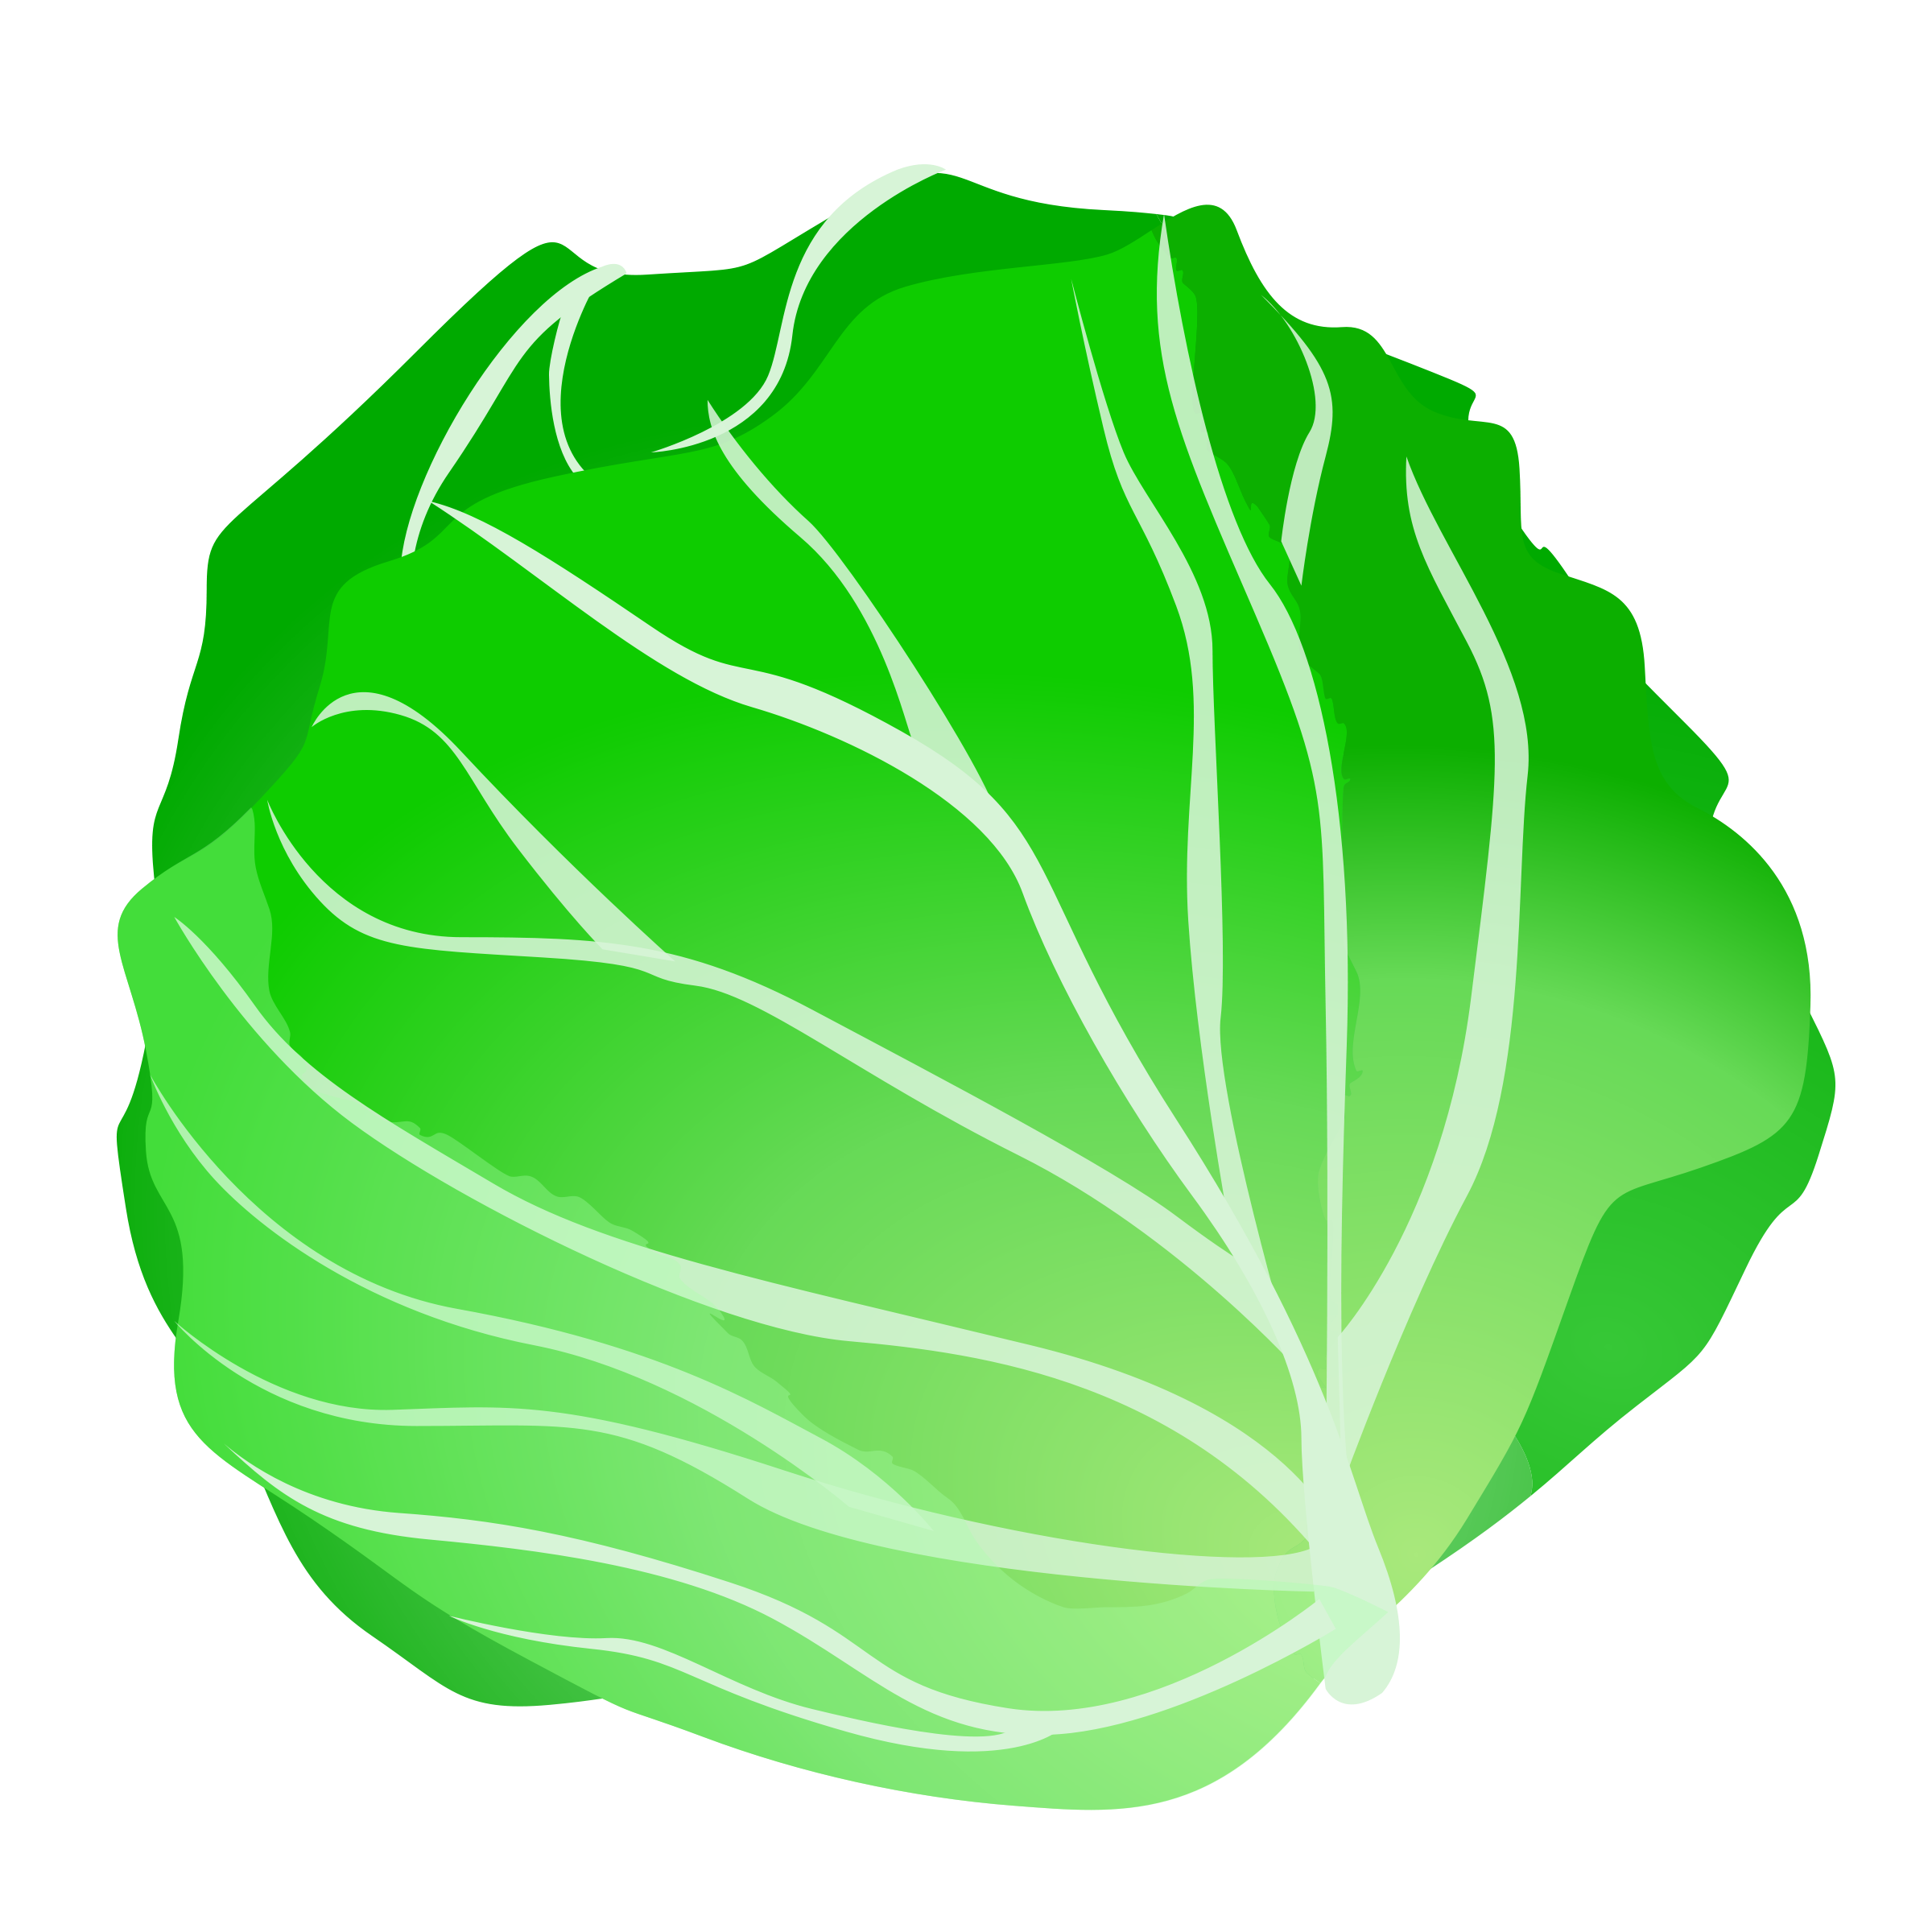 Cabbage clipart healthy food Cabbage%20clipart Clipart Cabbage Images Free